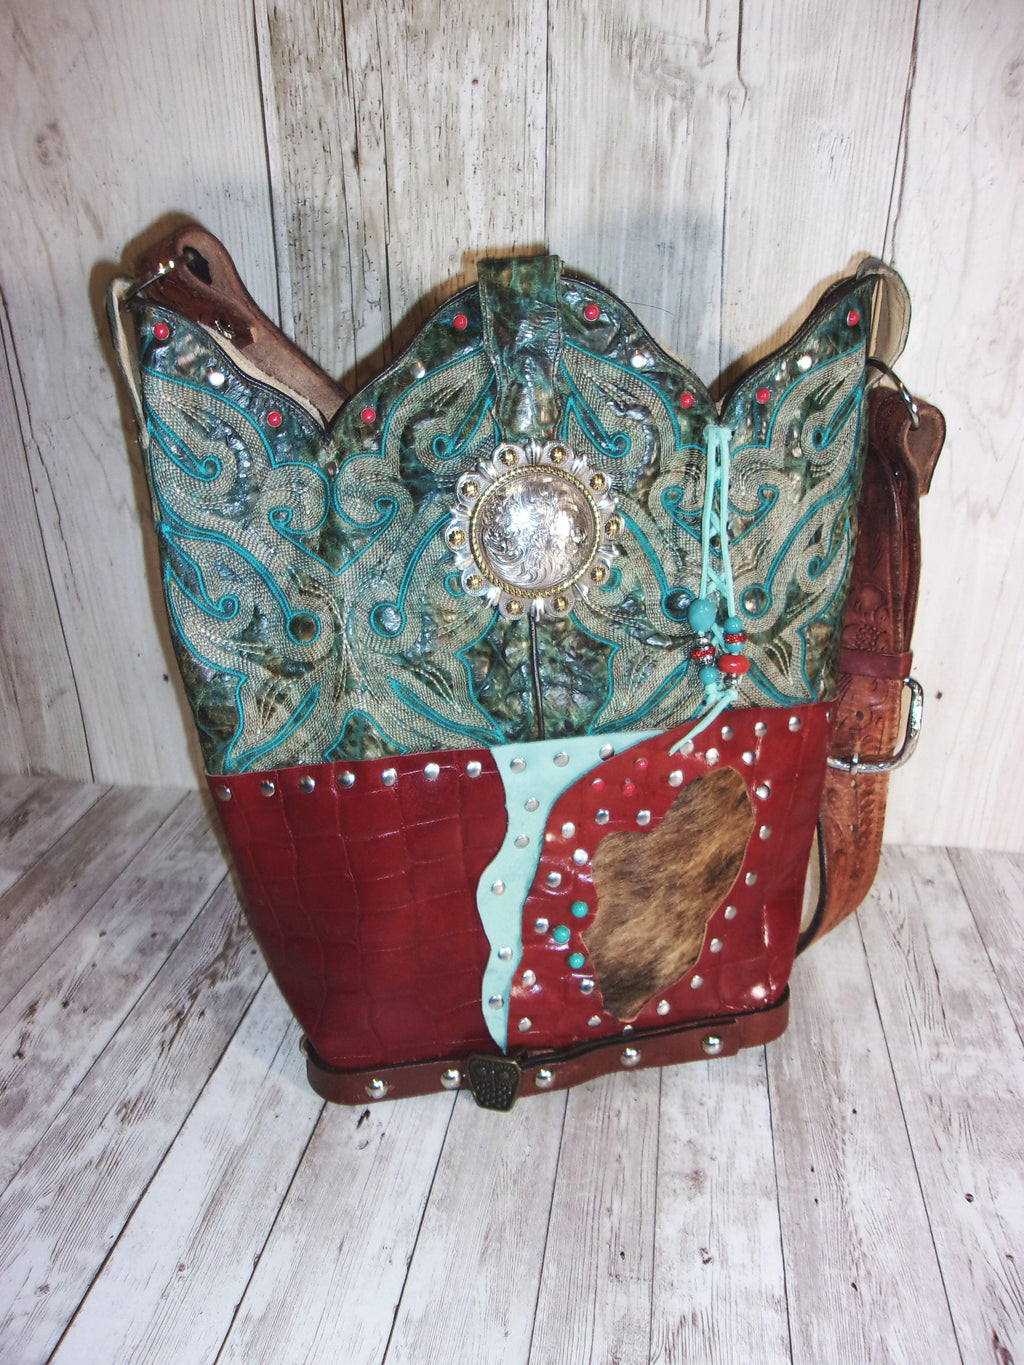 Handmade Leather Purse - Cowboy Boot Purse - Western Leather Purse TS259